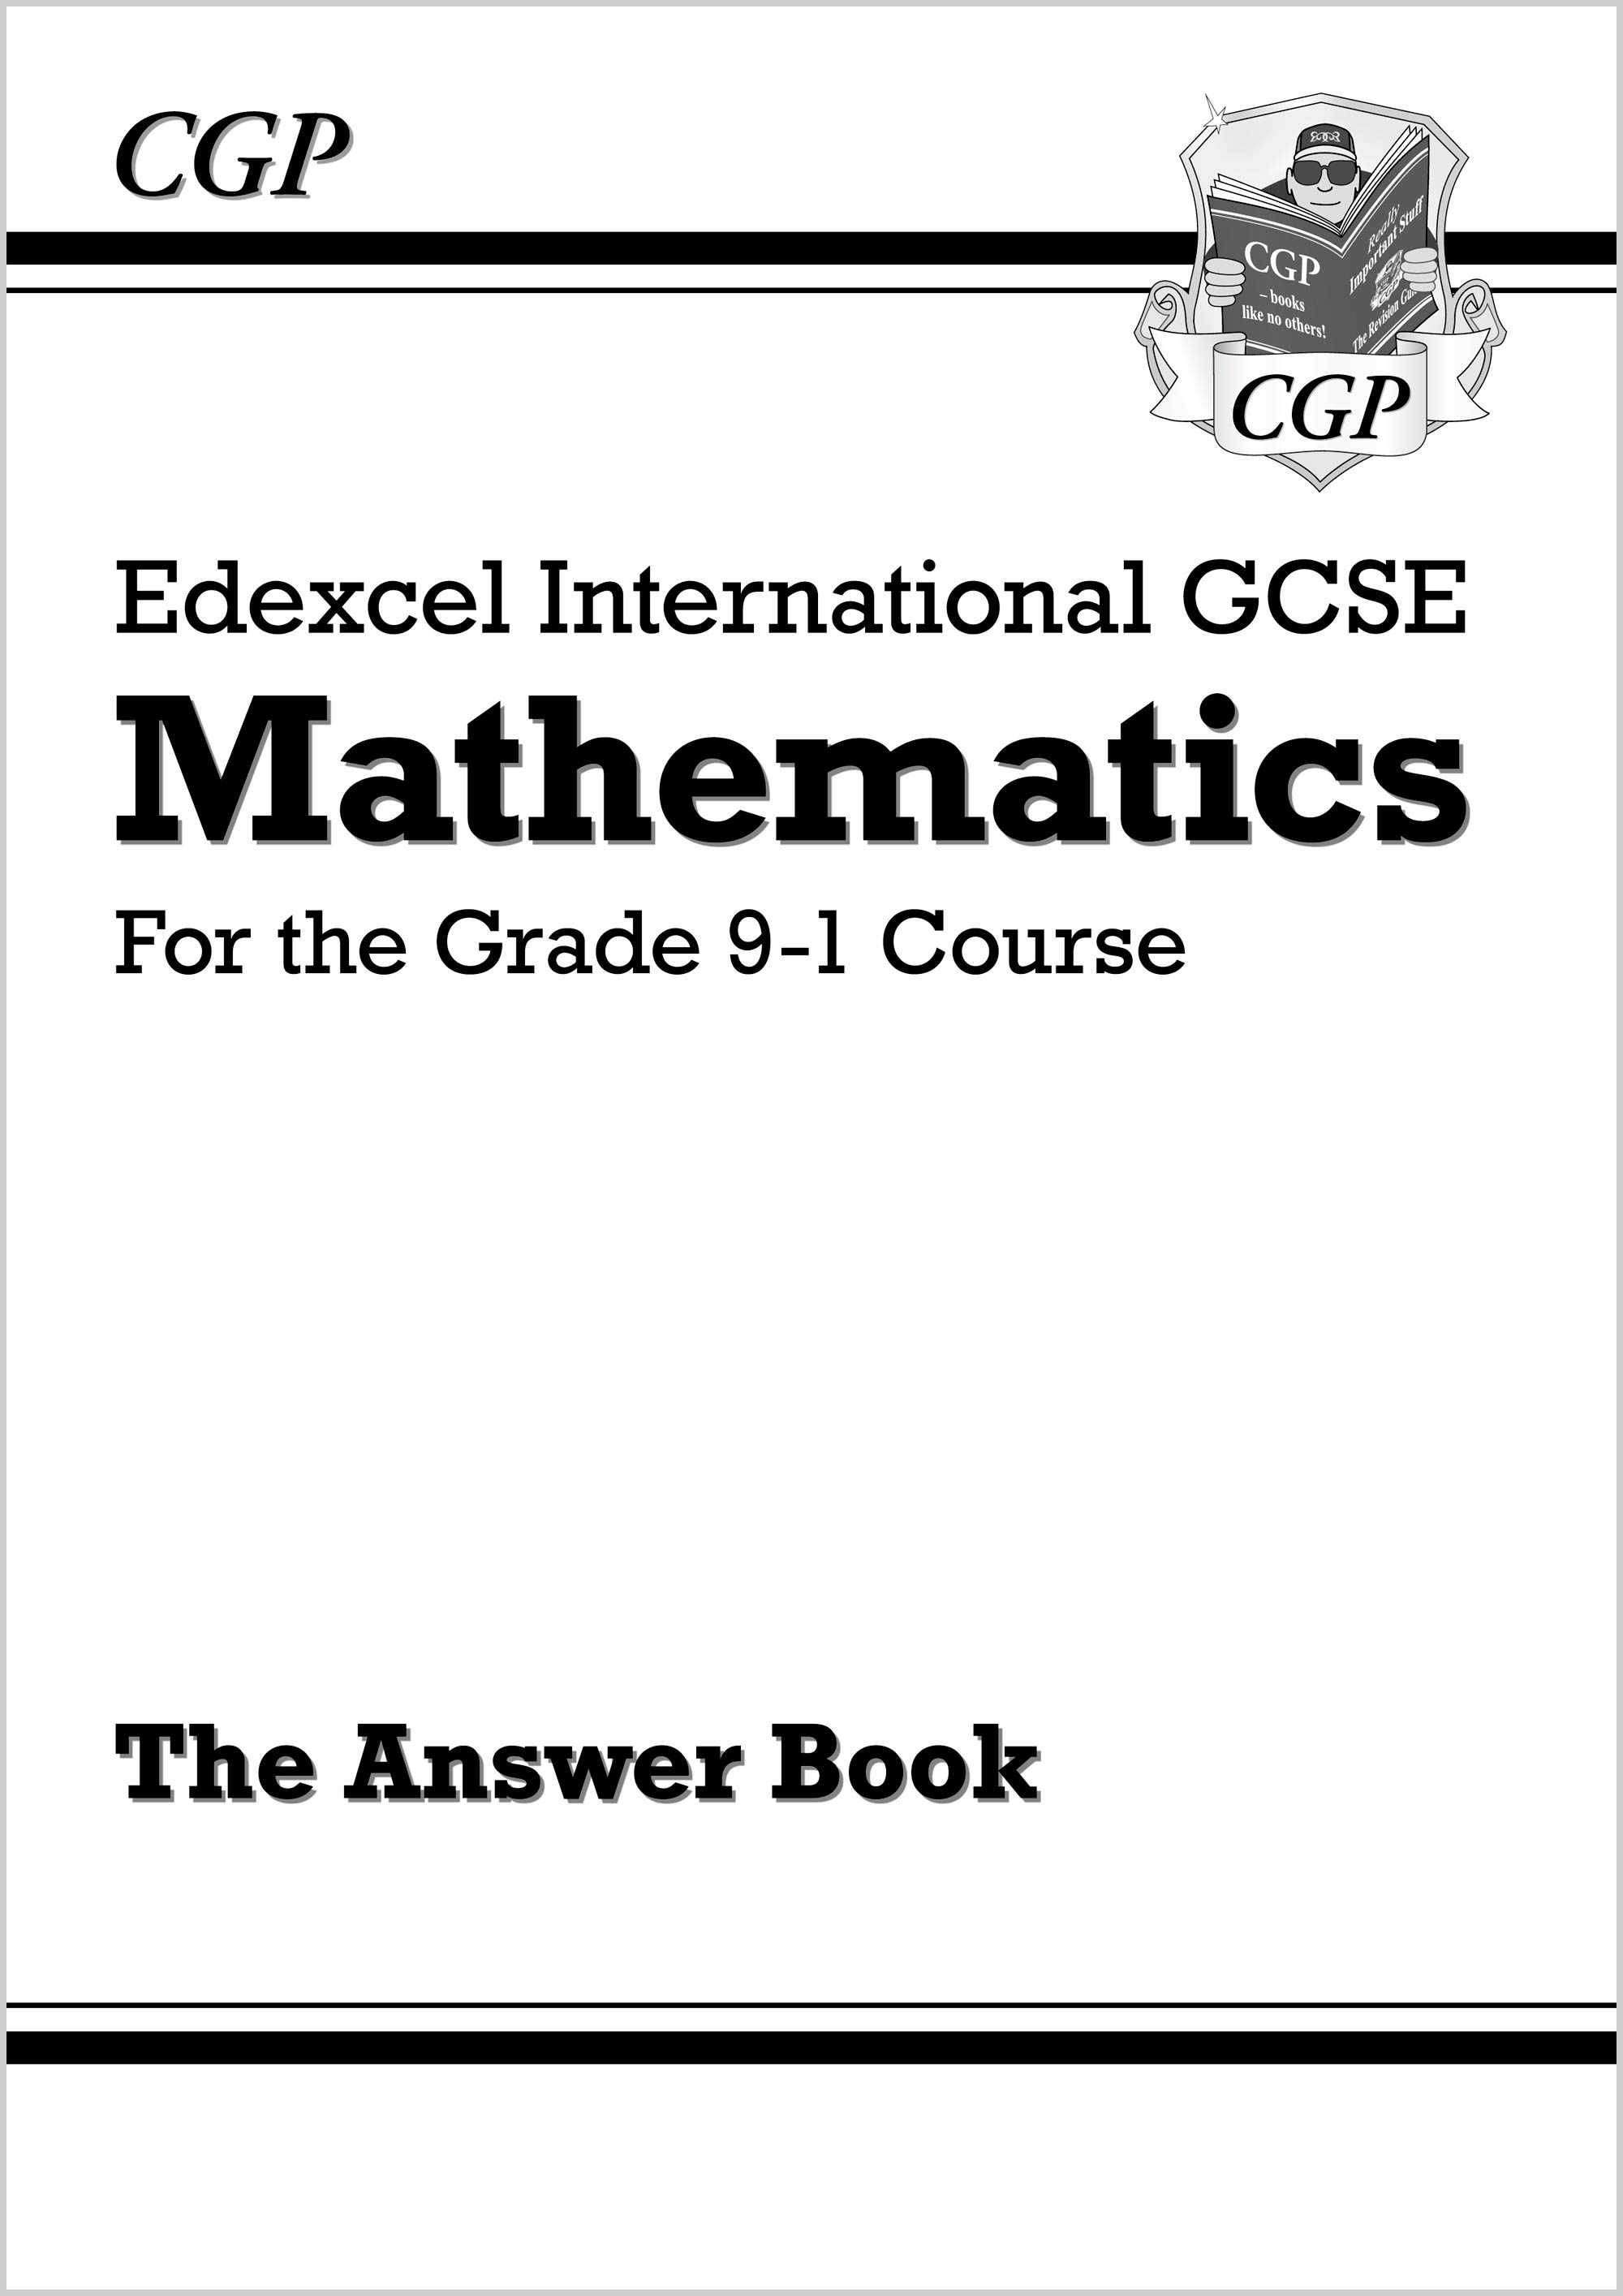 Edexcel International GCSE Maths Answers for Workbook